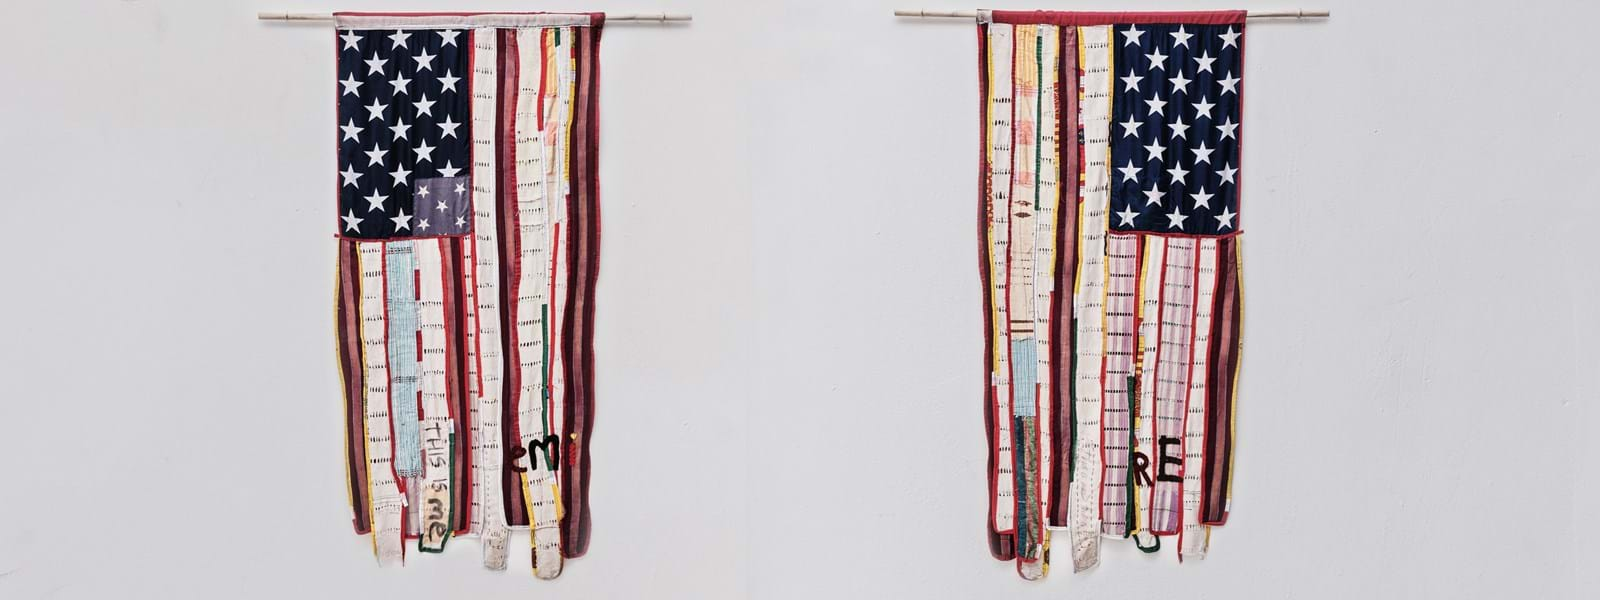 Image of daàPò réo, I TO I (Two-sided Flag from the Self Portraits series). Two American flags made up of different fabrics hung up side by side against a gray background.